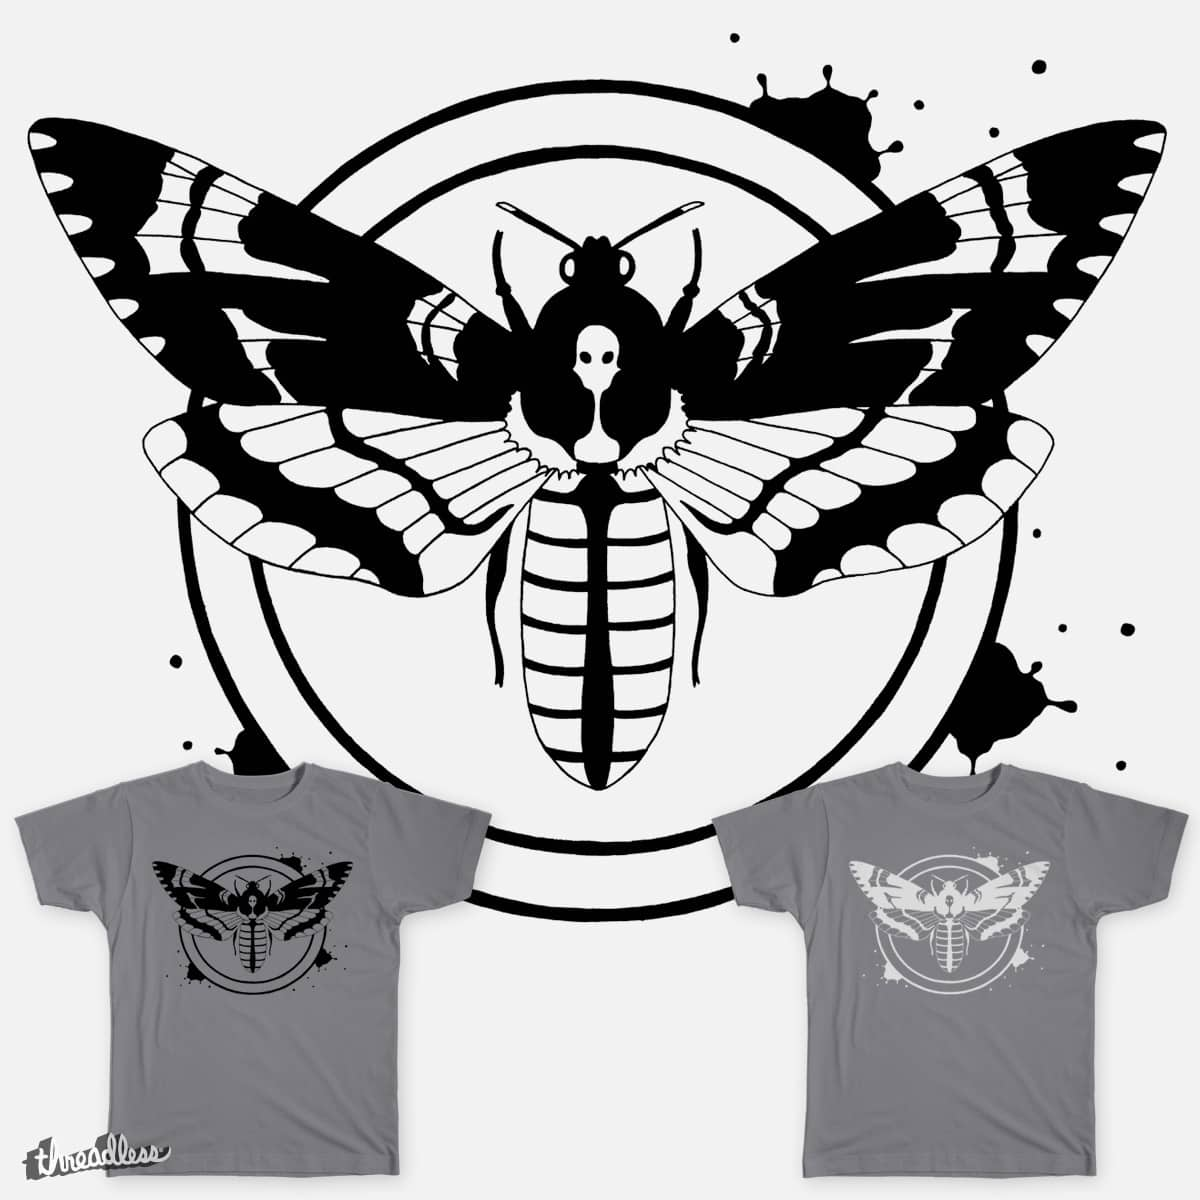 Alien's-head Hawkmoth by sunny.margaret on Threadless